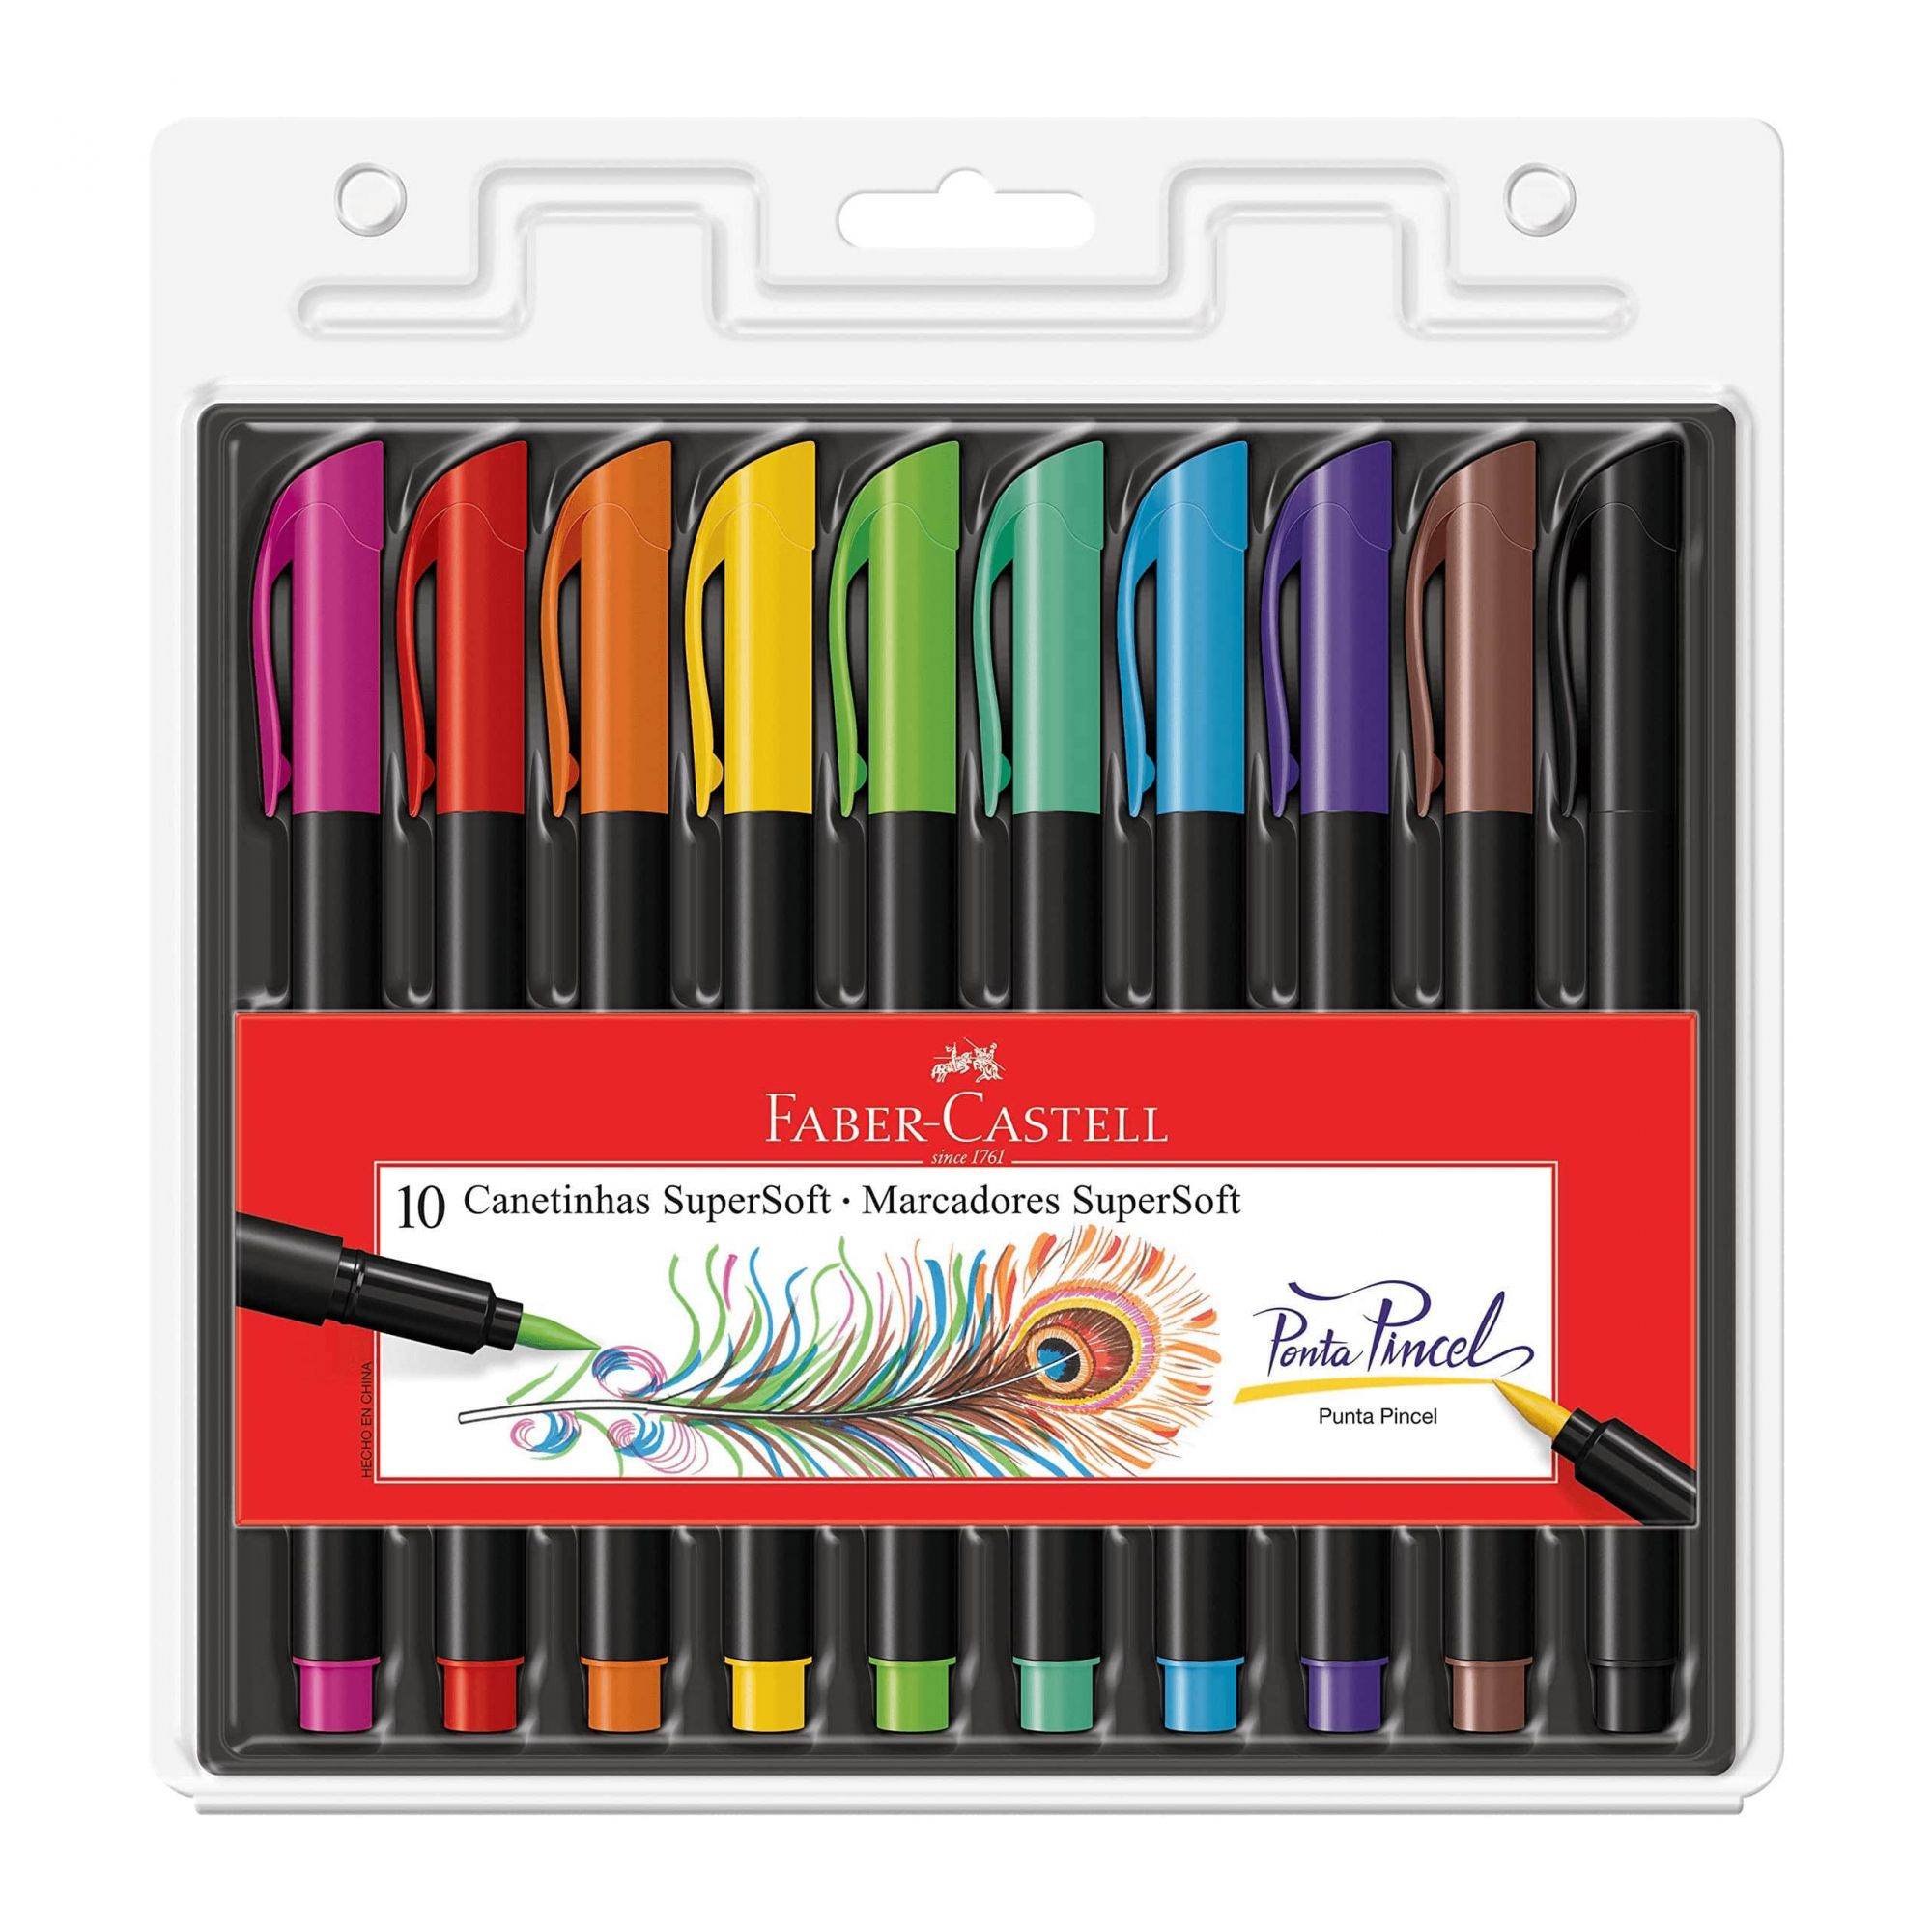 Caneta brush 10 cores Supersoft Faber-Castell